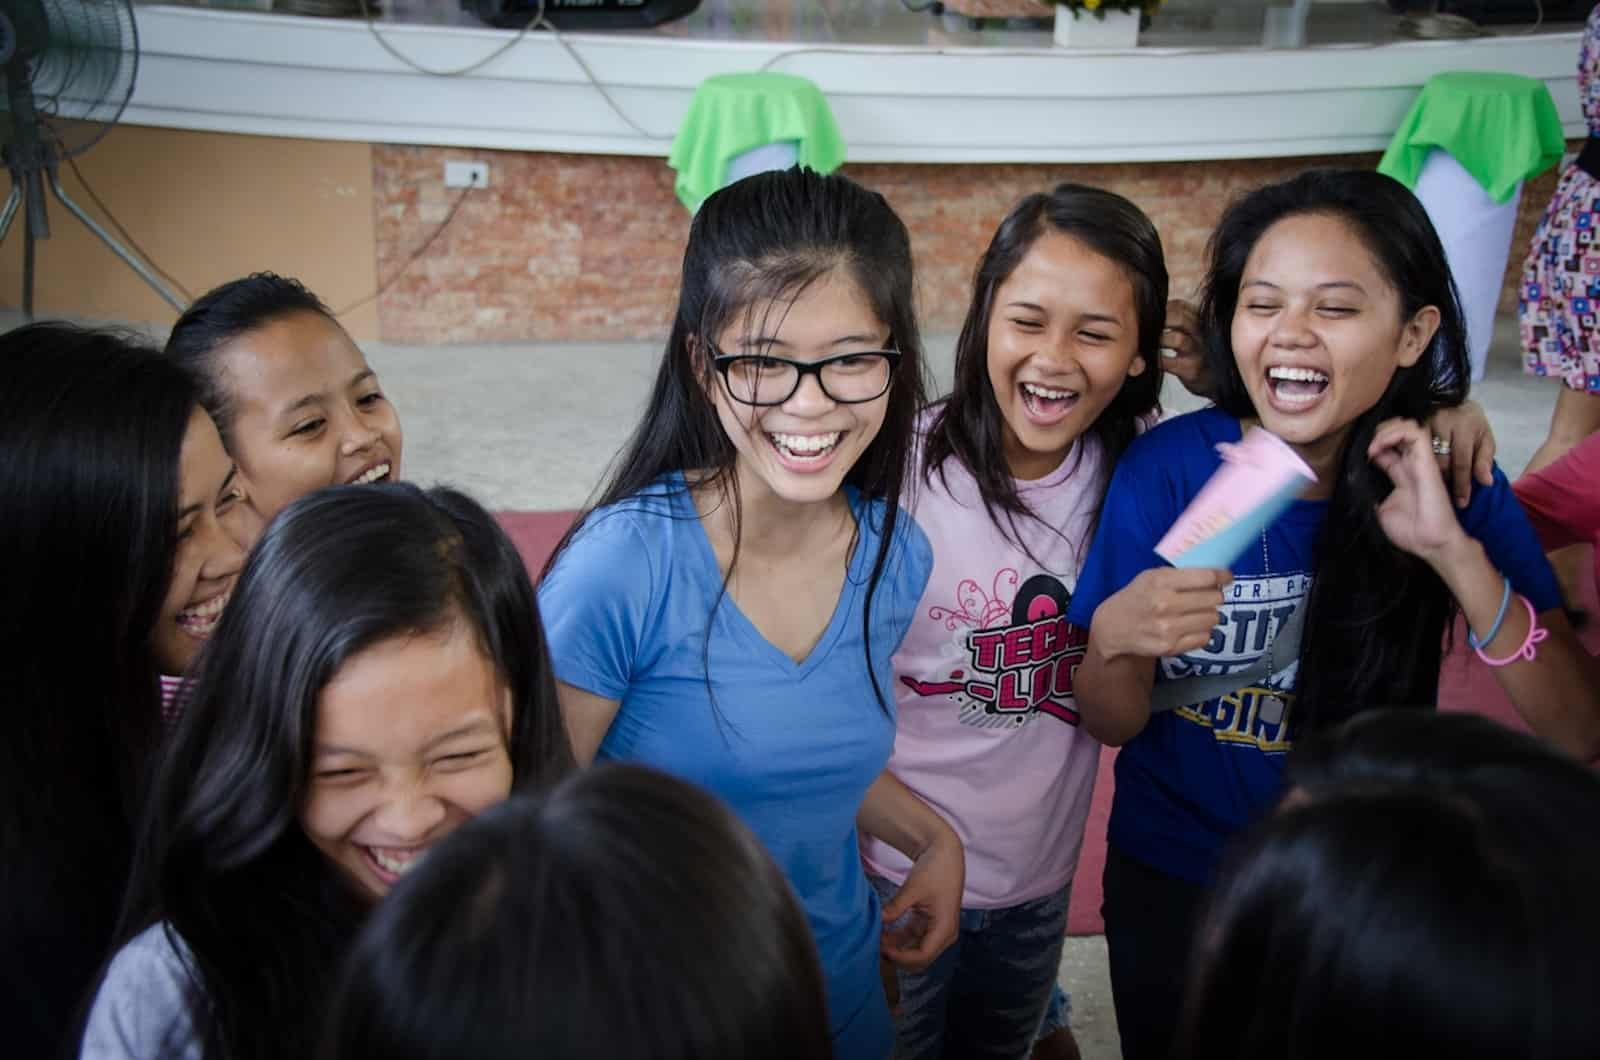 A group of girls smiles and laughs, standing inside a church.